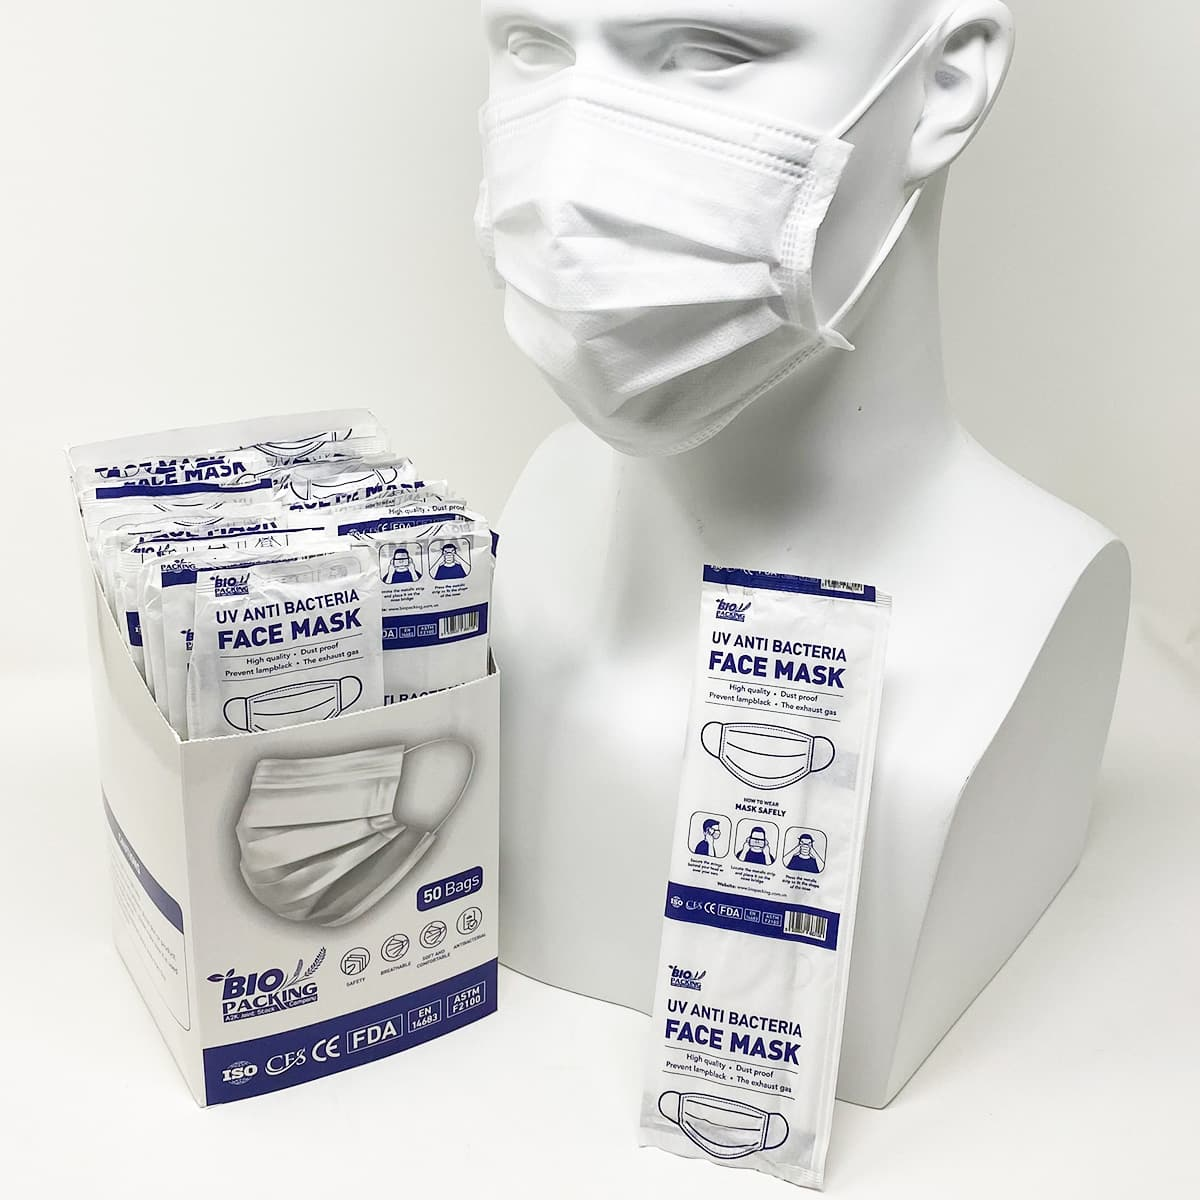 [Mask] Bright White Masks 4-Ply - Individually Wrapped -BioPacking 7